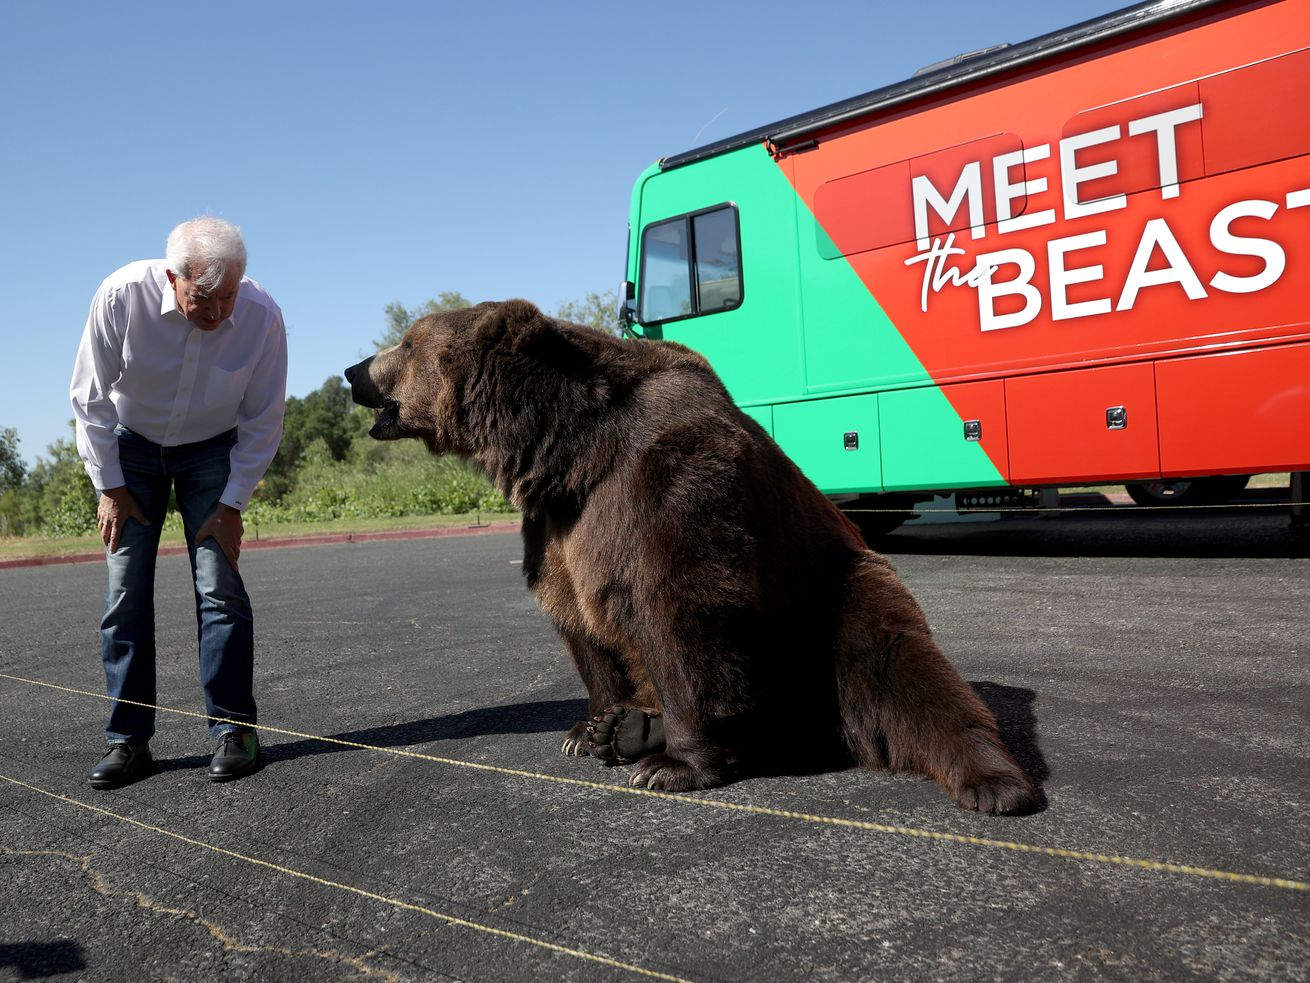 Republican California gubernatorial candidate John Cox greets a 1,000 pound bear at the start of a campaign rally at Miller Regional Park on May 04, 2021 in Sacramento, California.